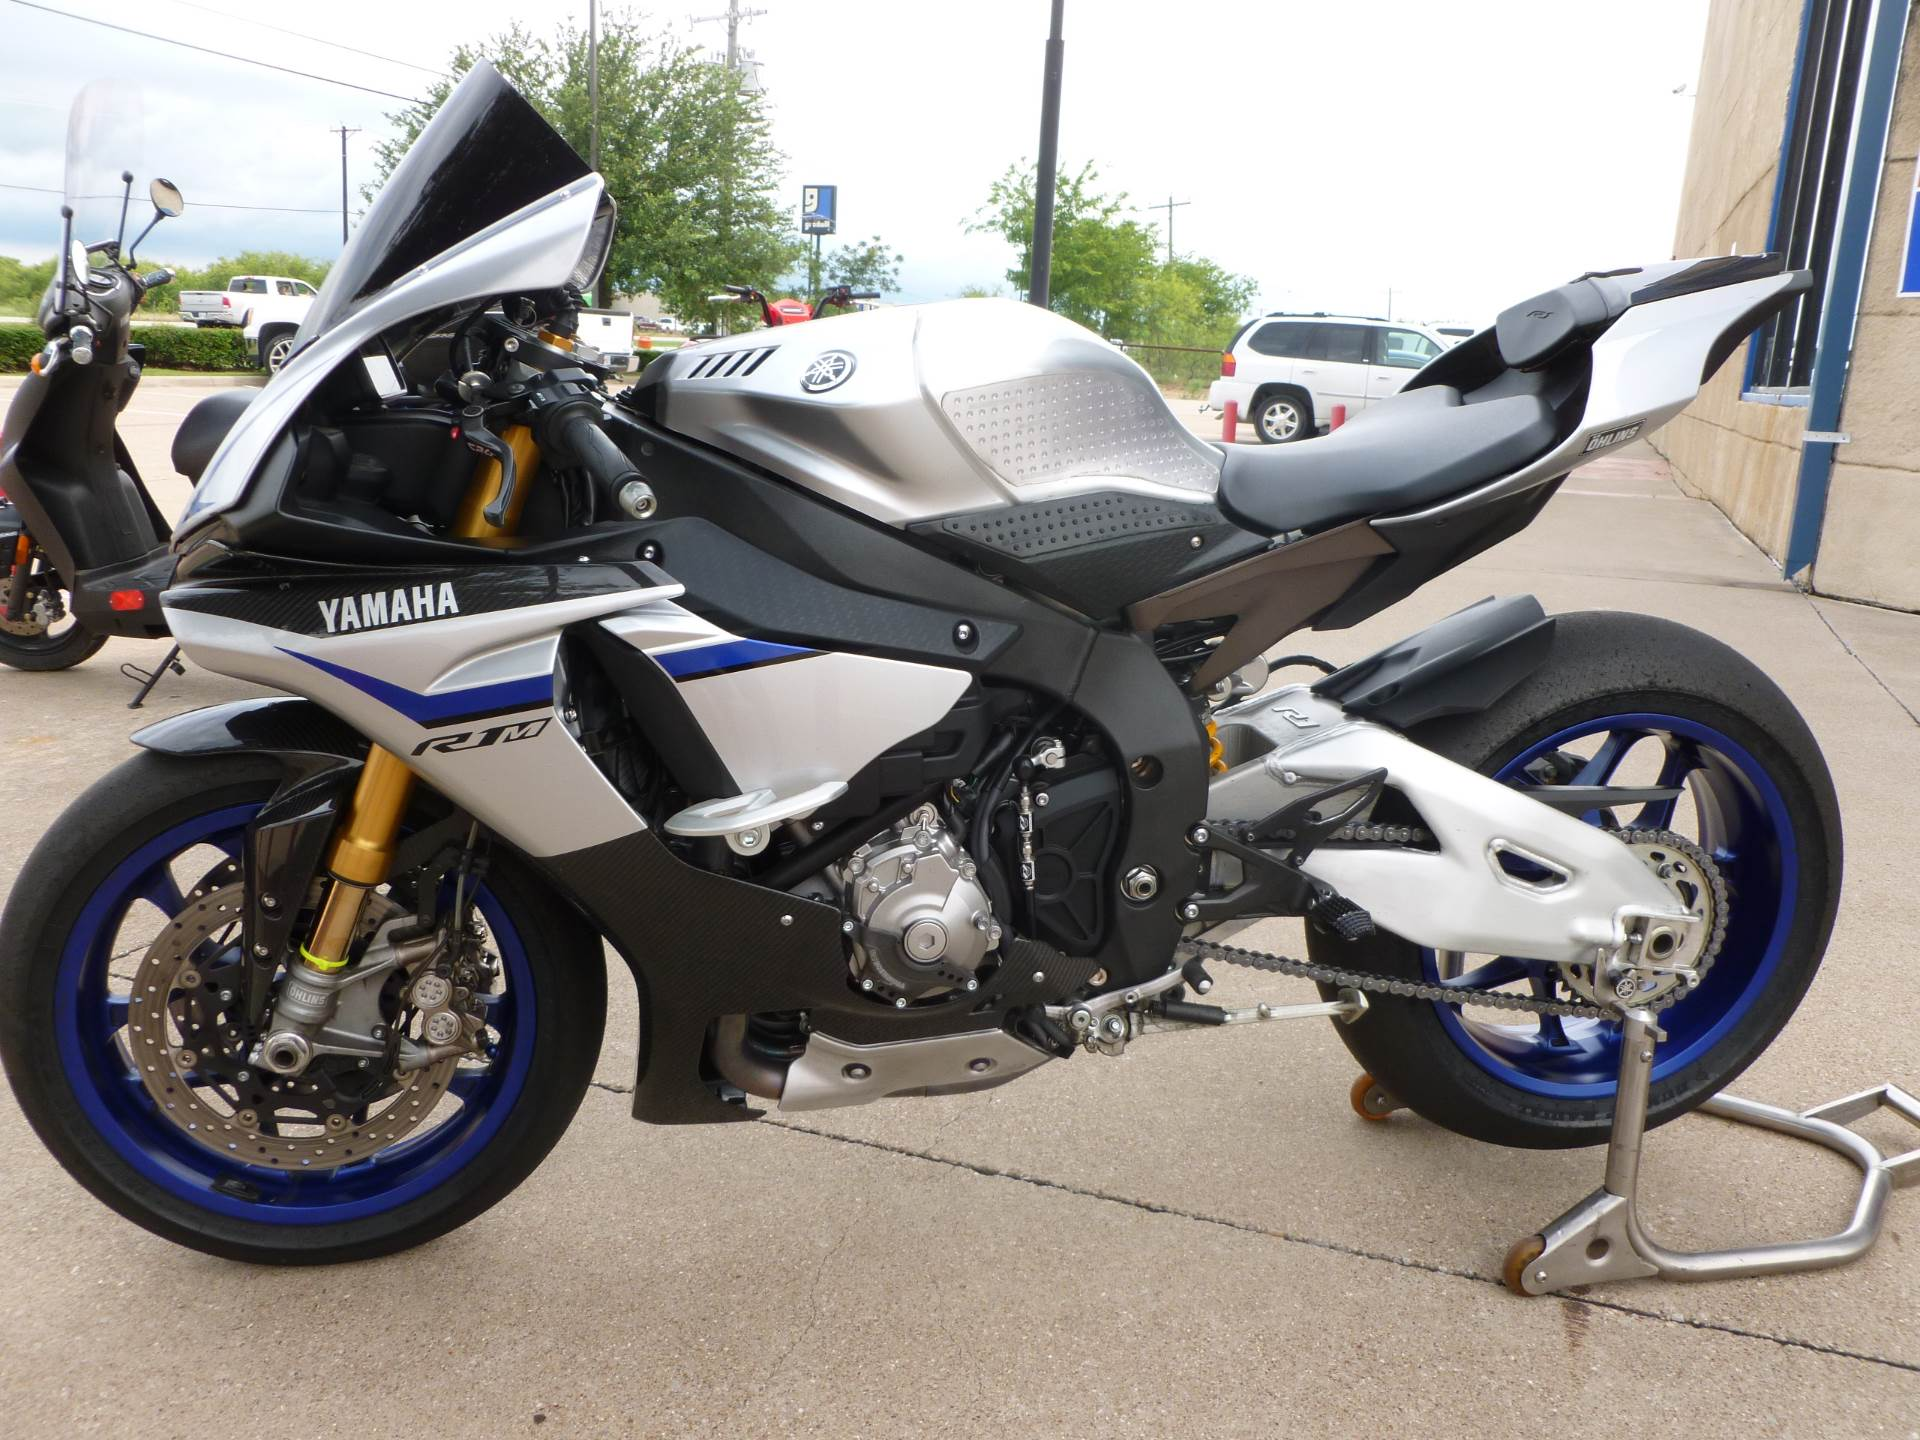 2015 Yamaha YZF-R1M for sale 24486